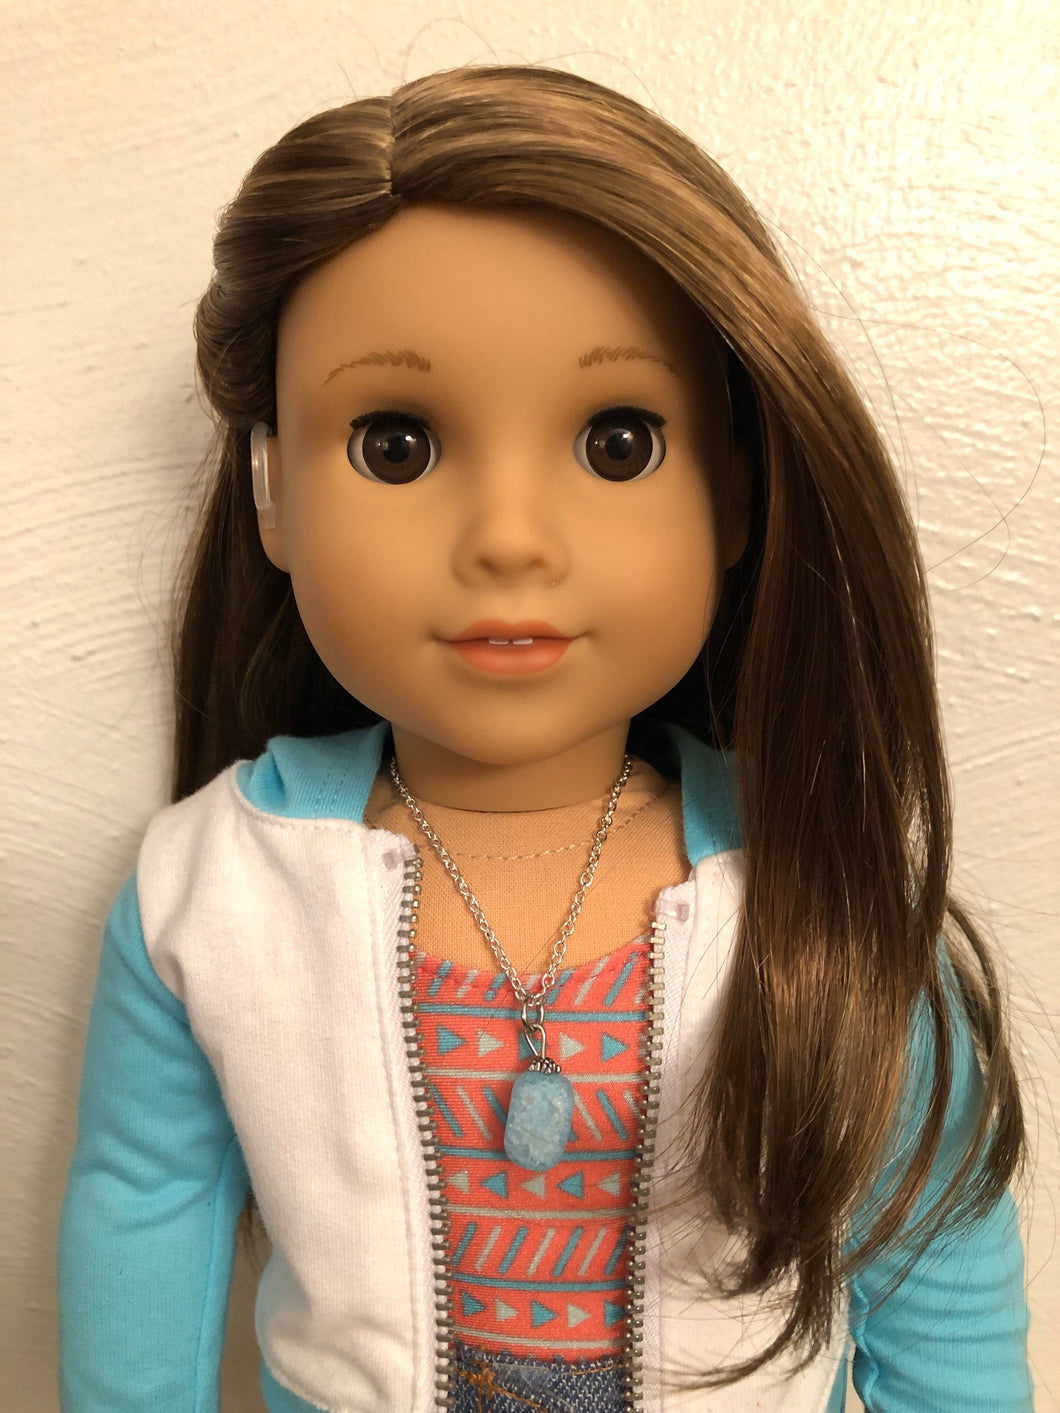 Blue Sea Glass Necklace for 18 inch American Girl Doll of the year 2020 Joss Kendrick